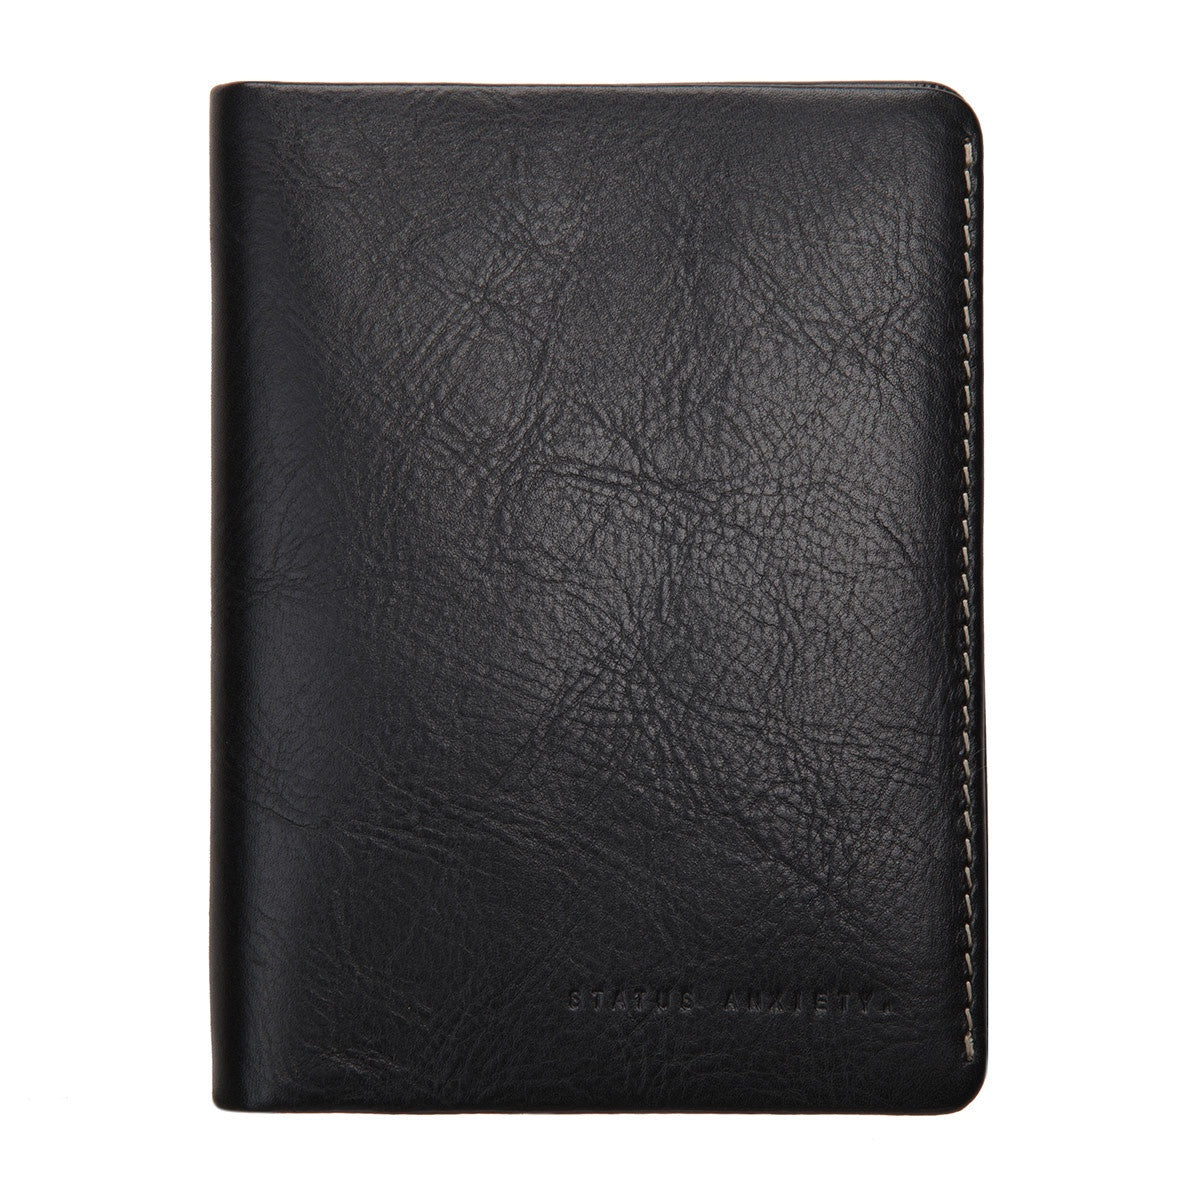 Status Anxiety Conquest Passport Wallet - The Artisan Storeroom